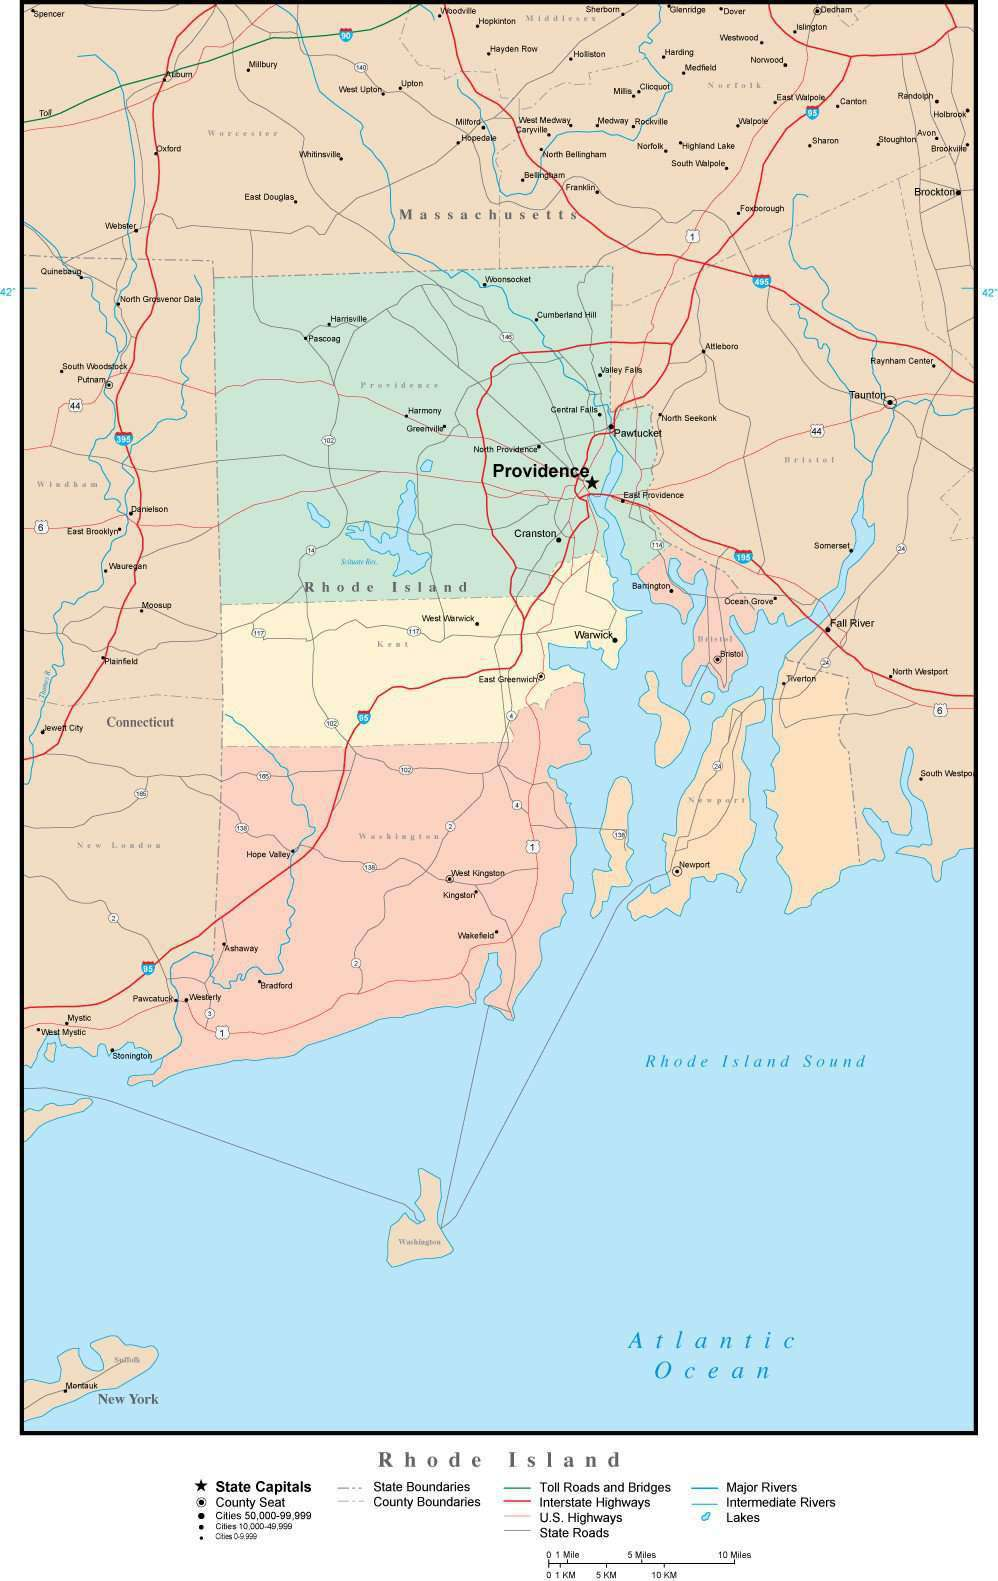 Rhode Island Adobe Illustrator Map with Counties, Cities, County ...